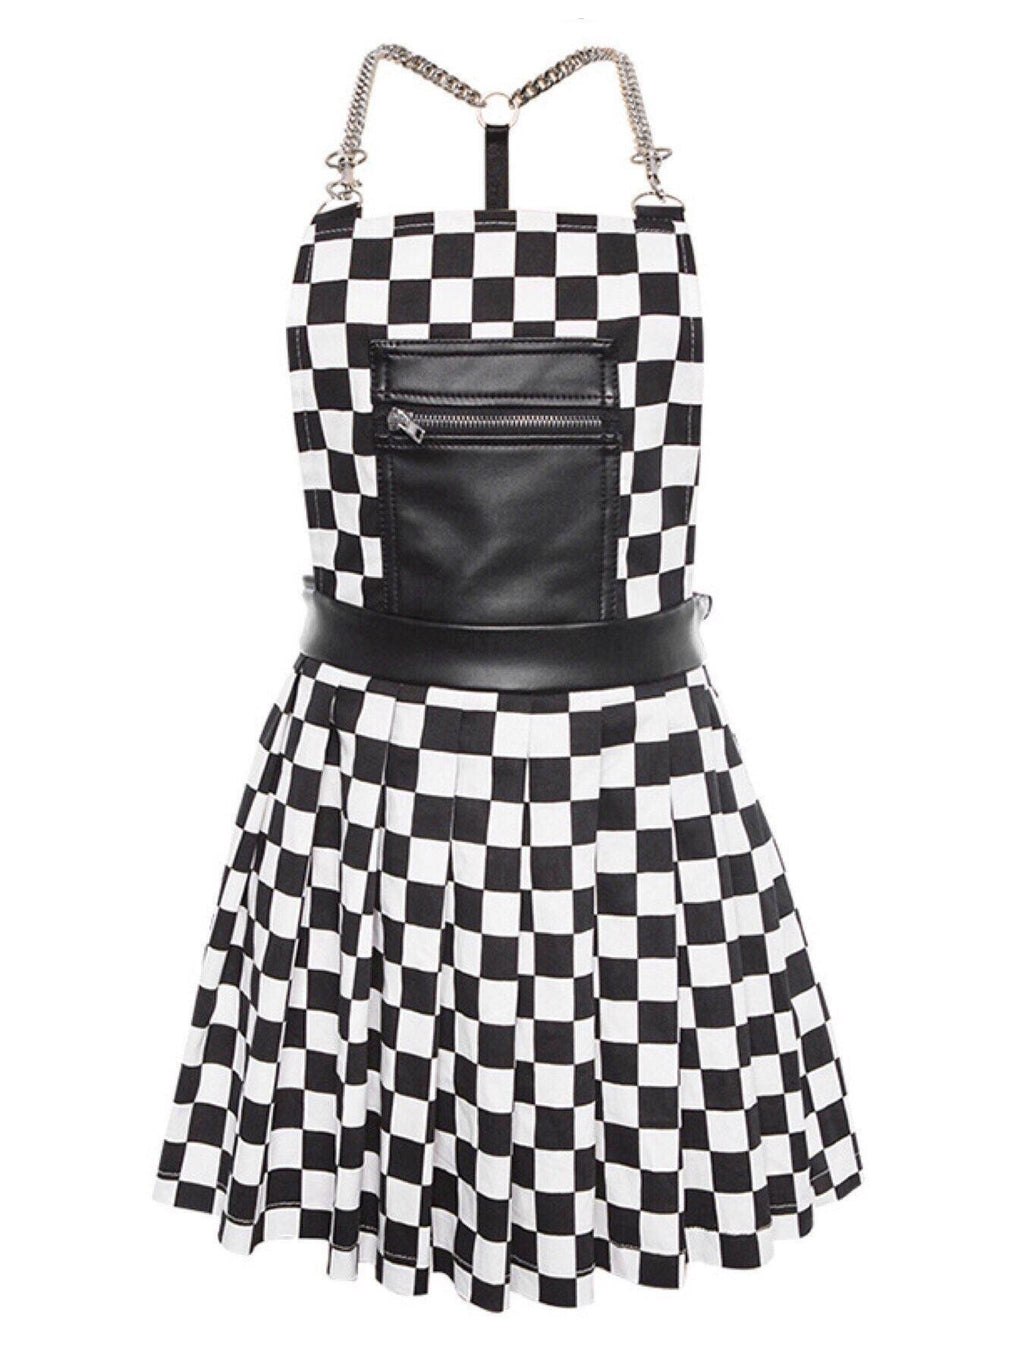 BlissGirl - Black and White Checkered Romper - - Harajuku - Kawaii - Alternative